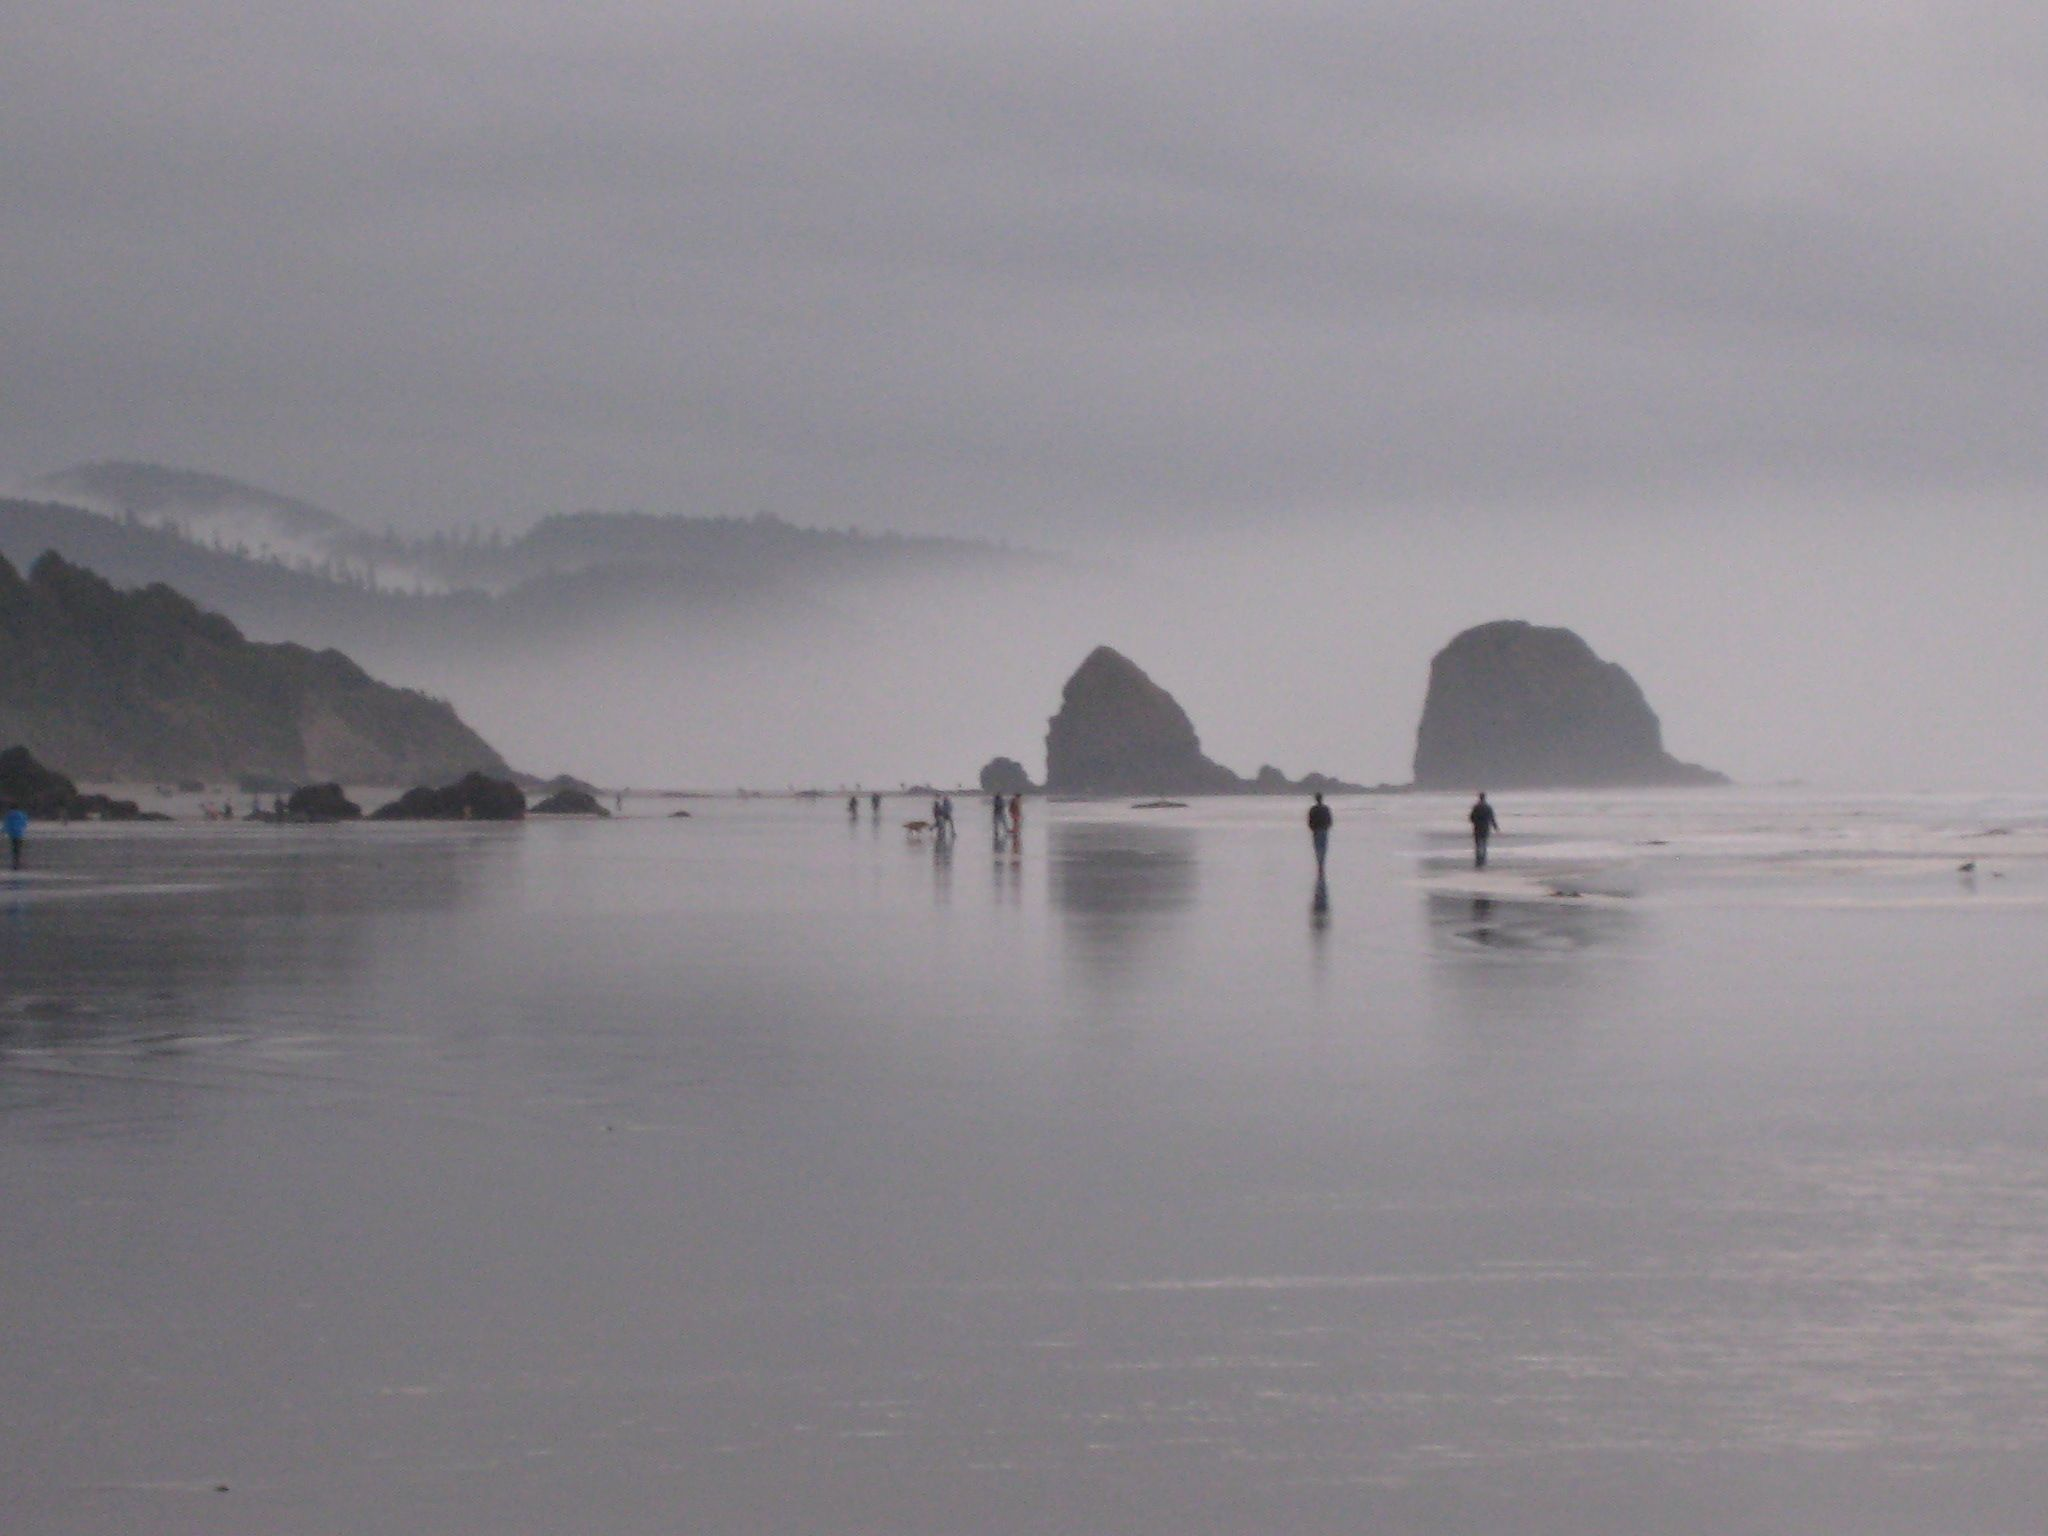 Missing of the old day  @Cannon Beach, Oregon